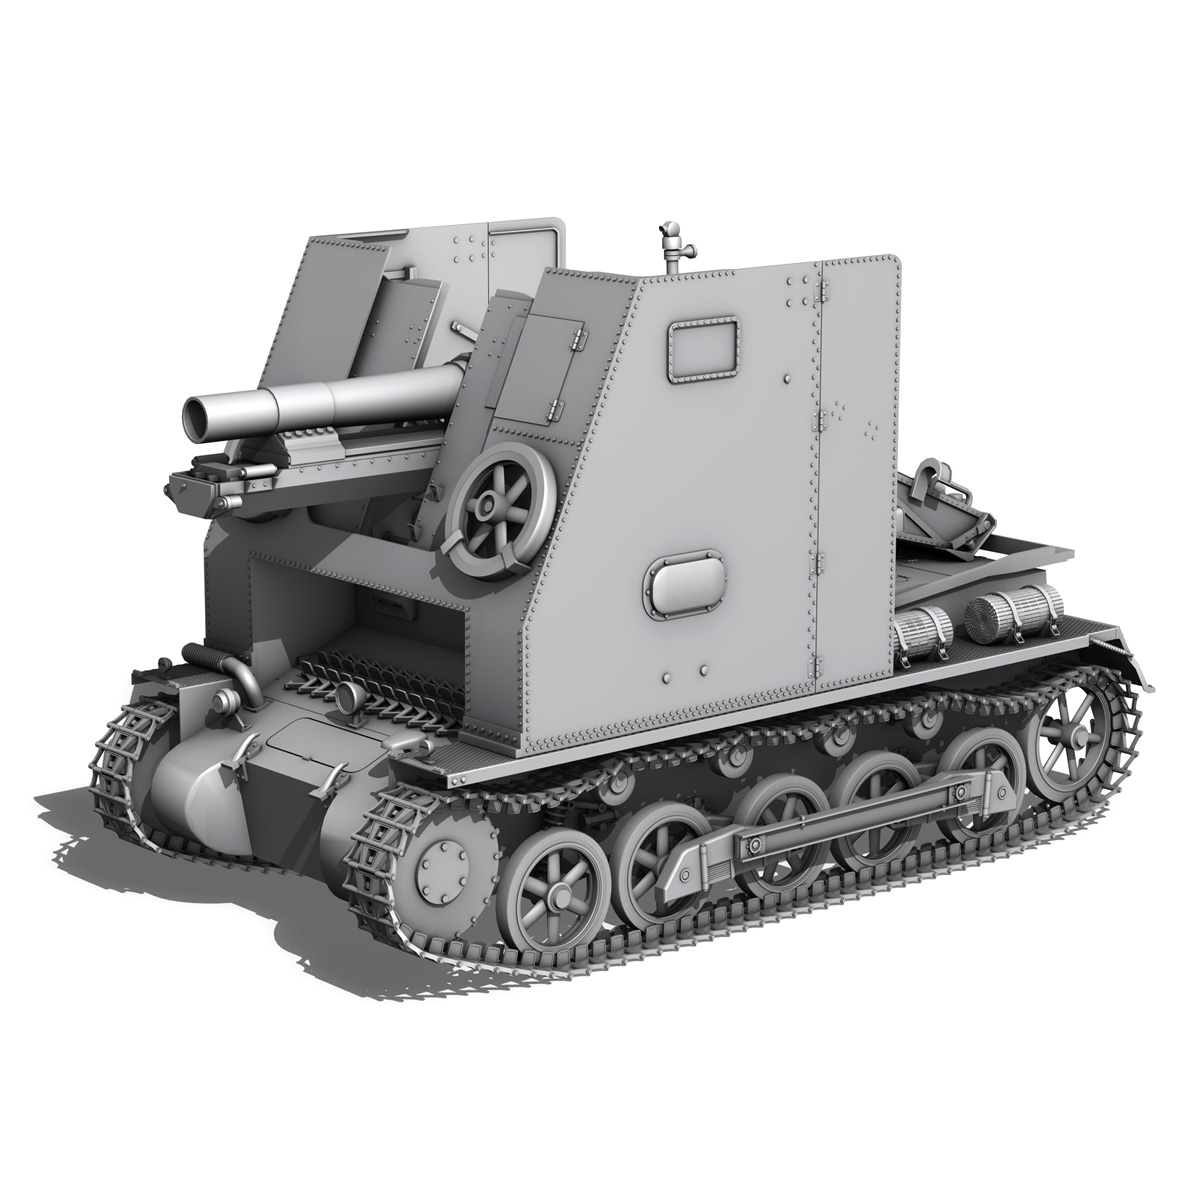 panzerkampfwagen 1 – panzer 1 collection 3d model 3ds fbx c4d lwo obj 189337